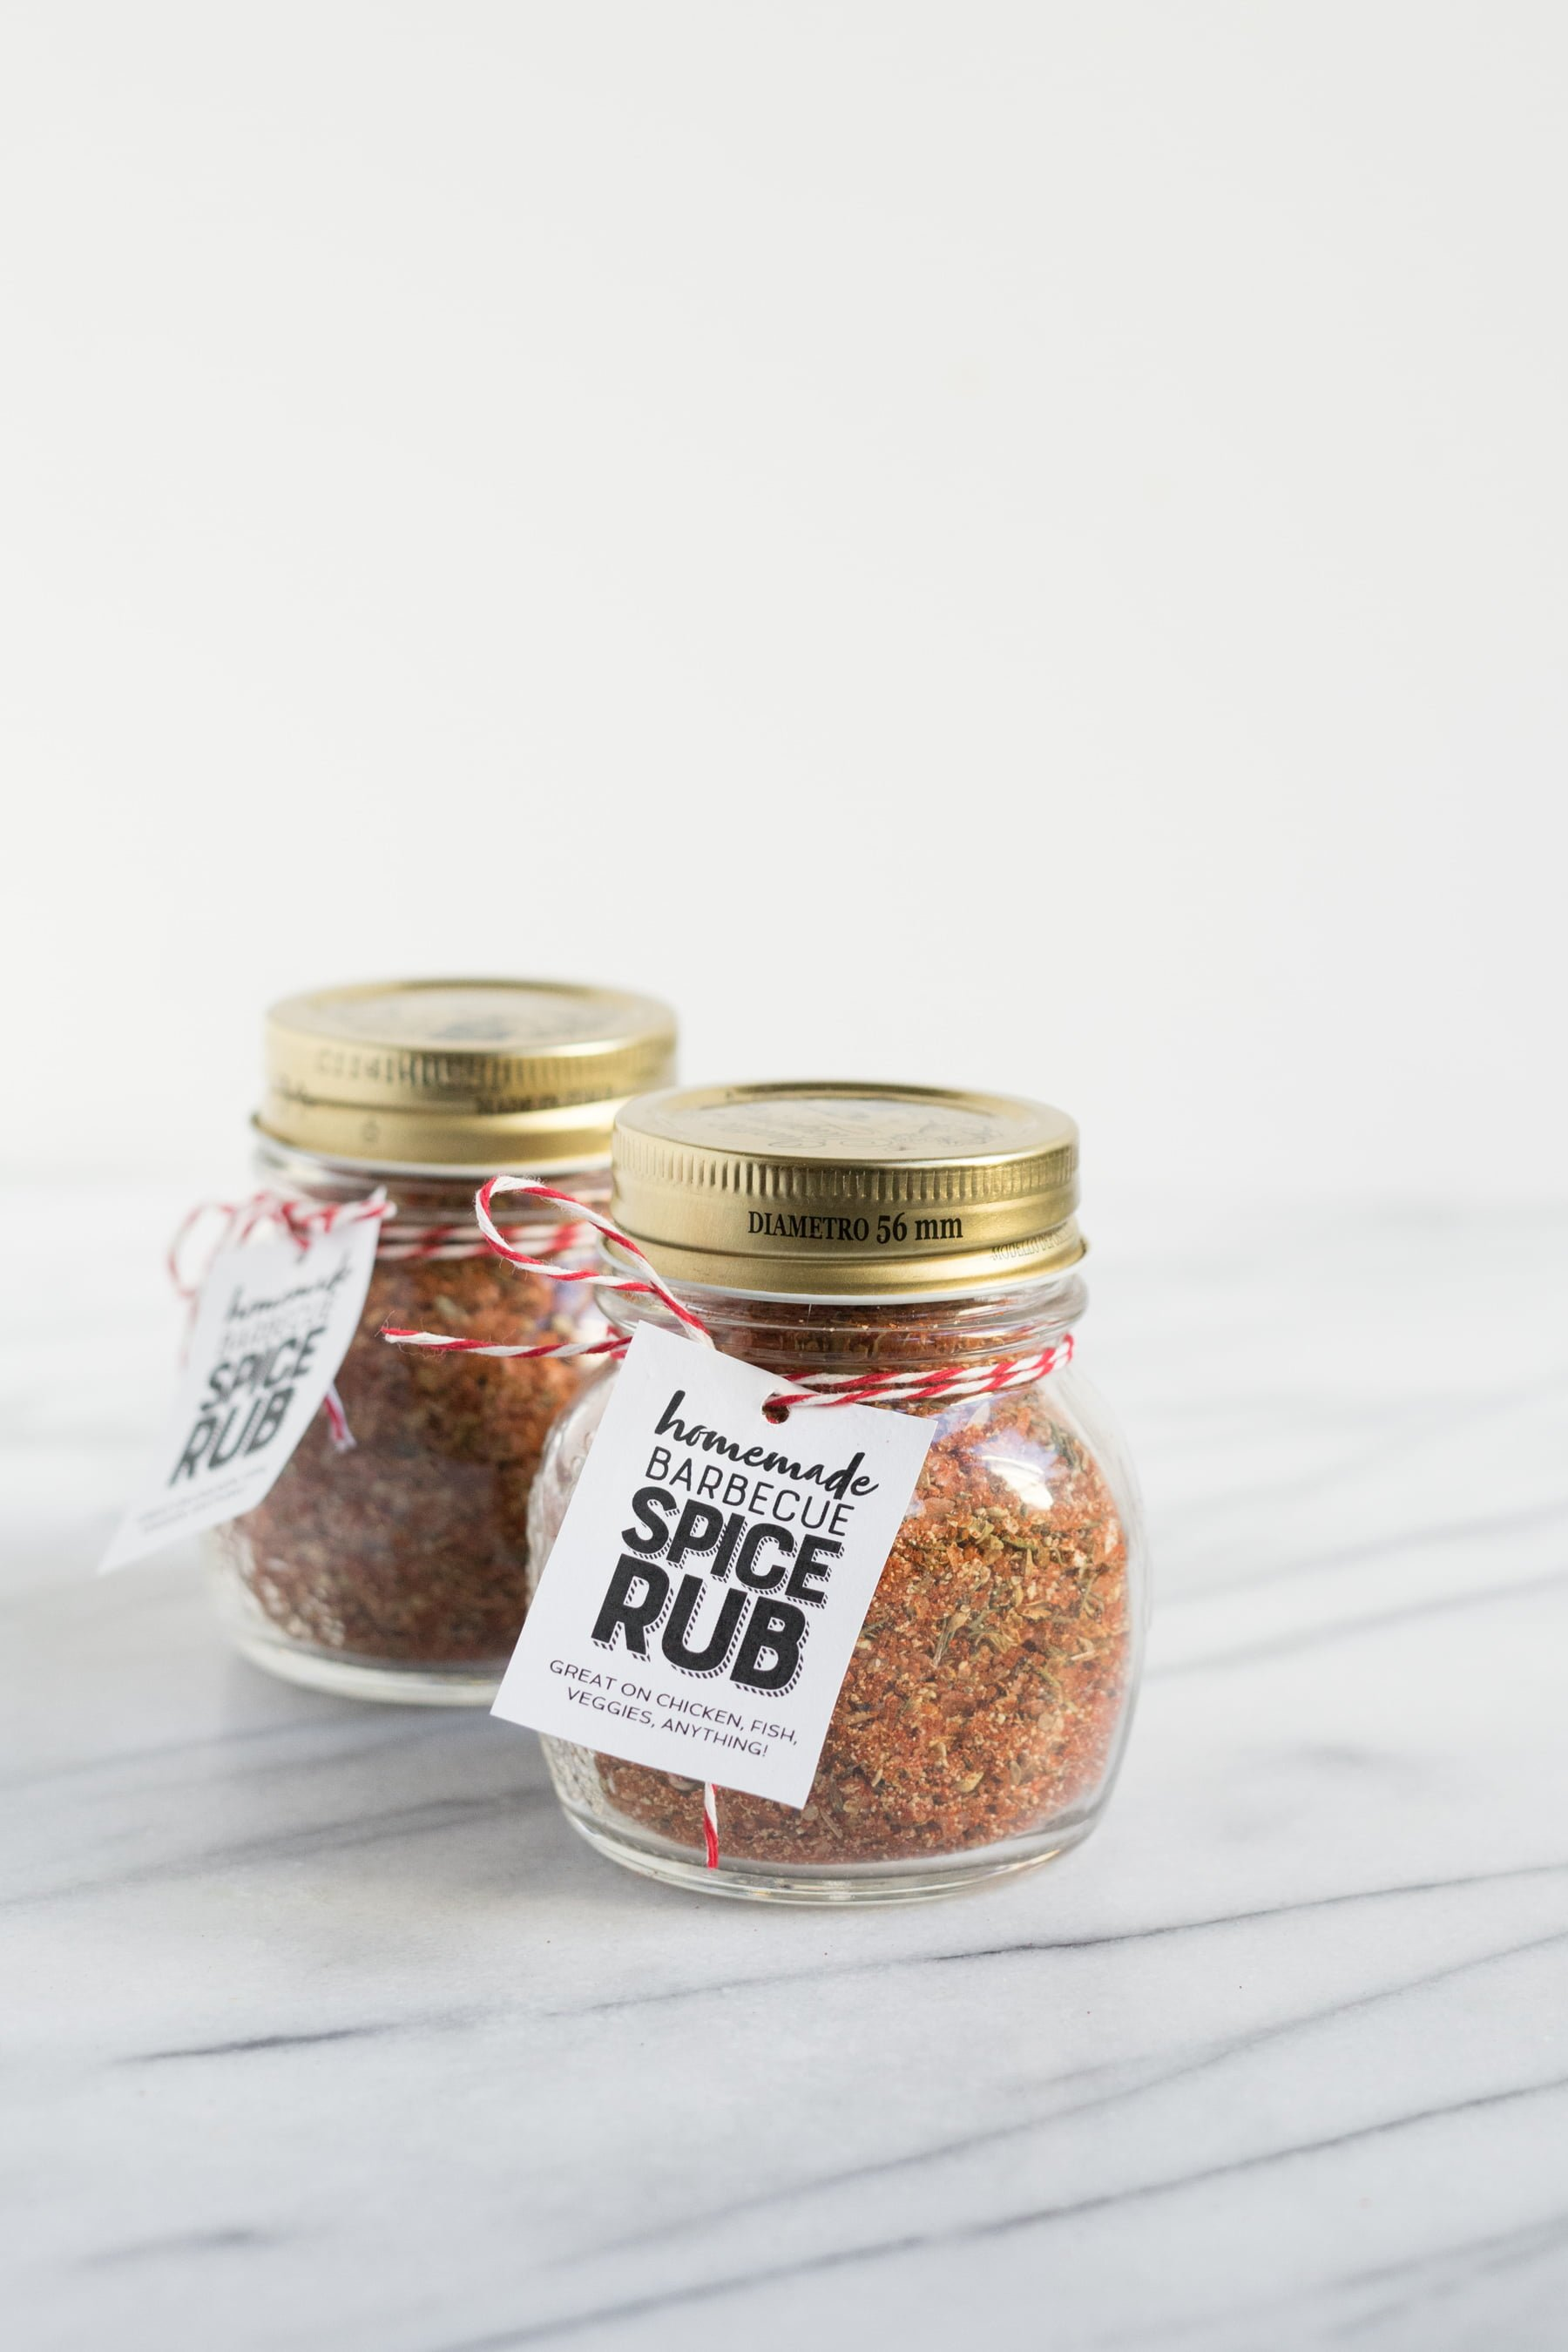 Barbecue Spice Rub